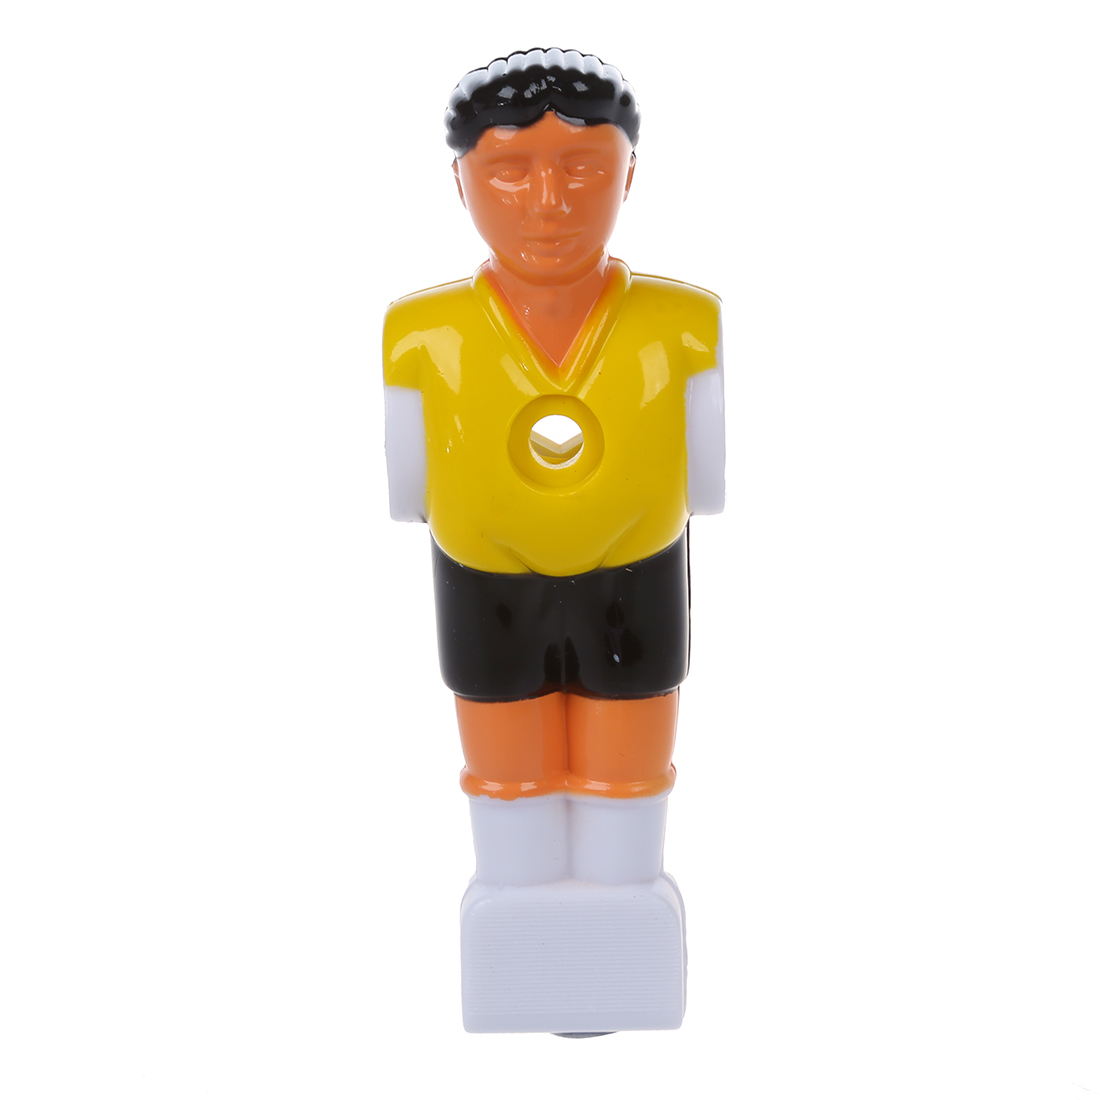 Football Men Table Guys Football Player Part image